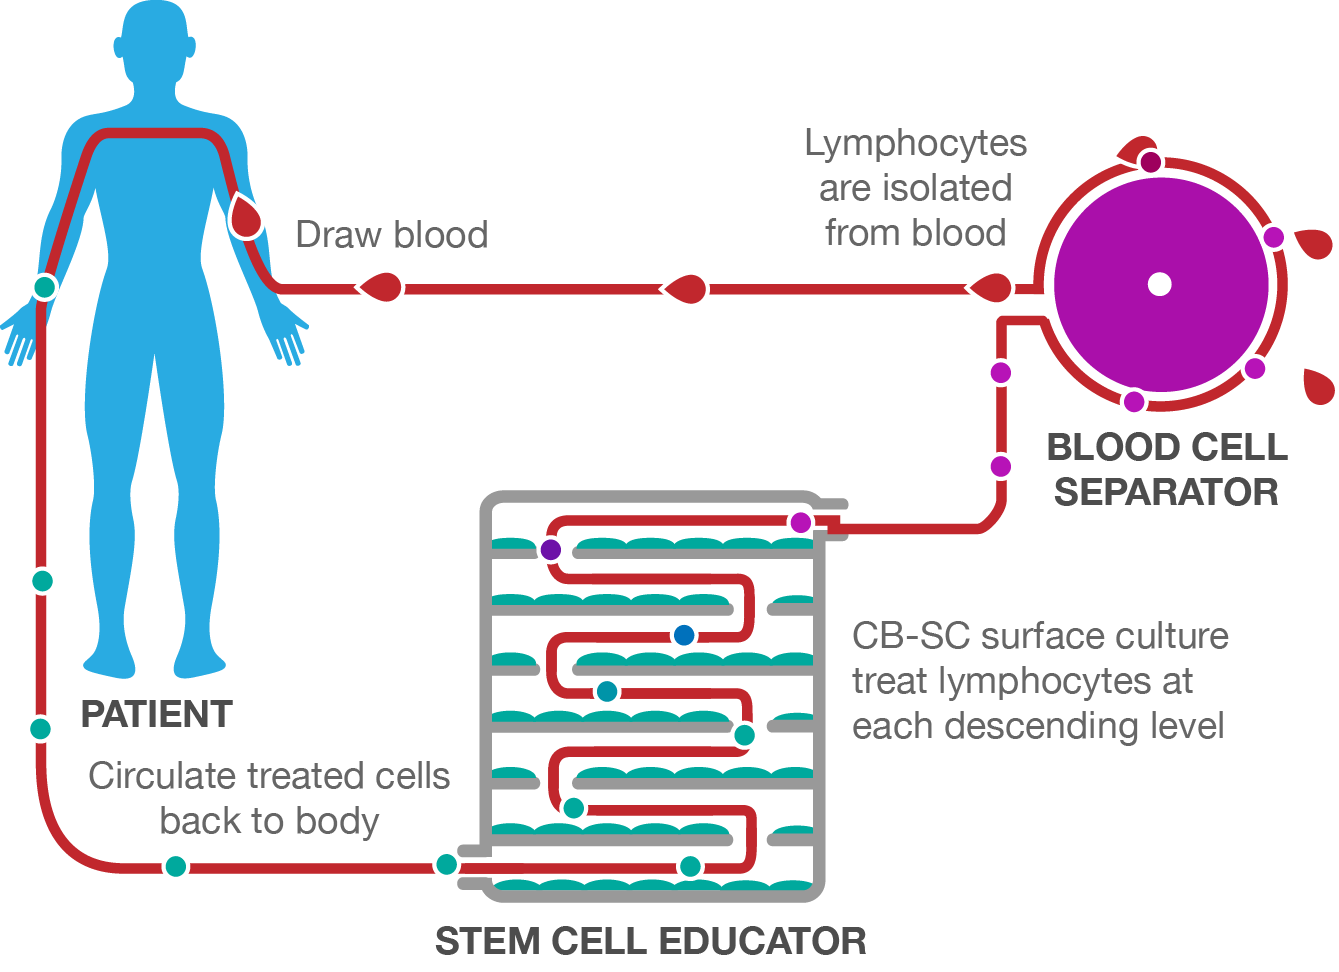 stem cell educator therapy process.png